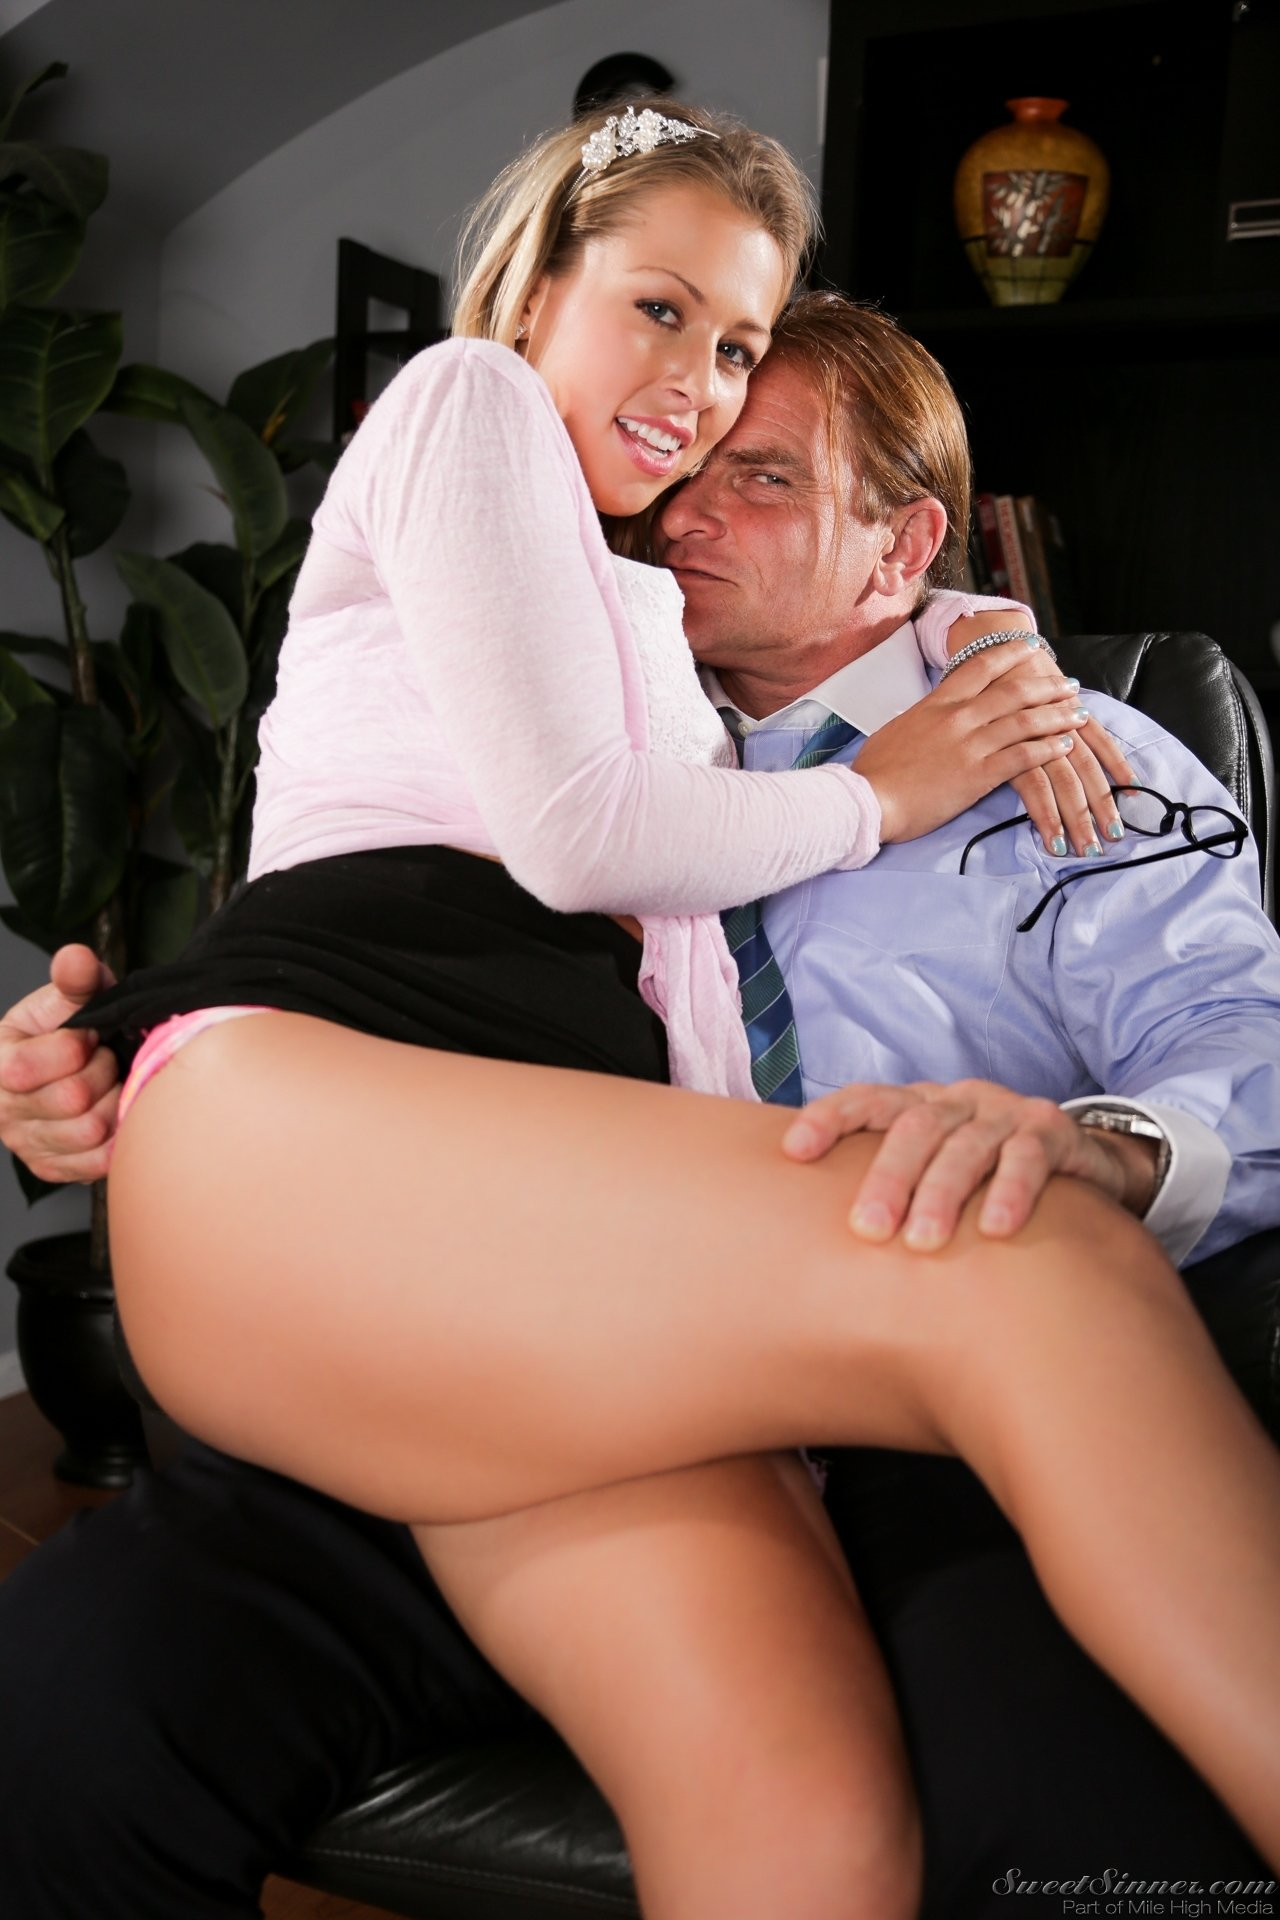 Wife swapping spanking Erotic stories free reading